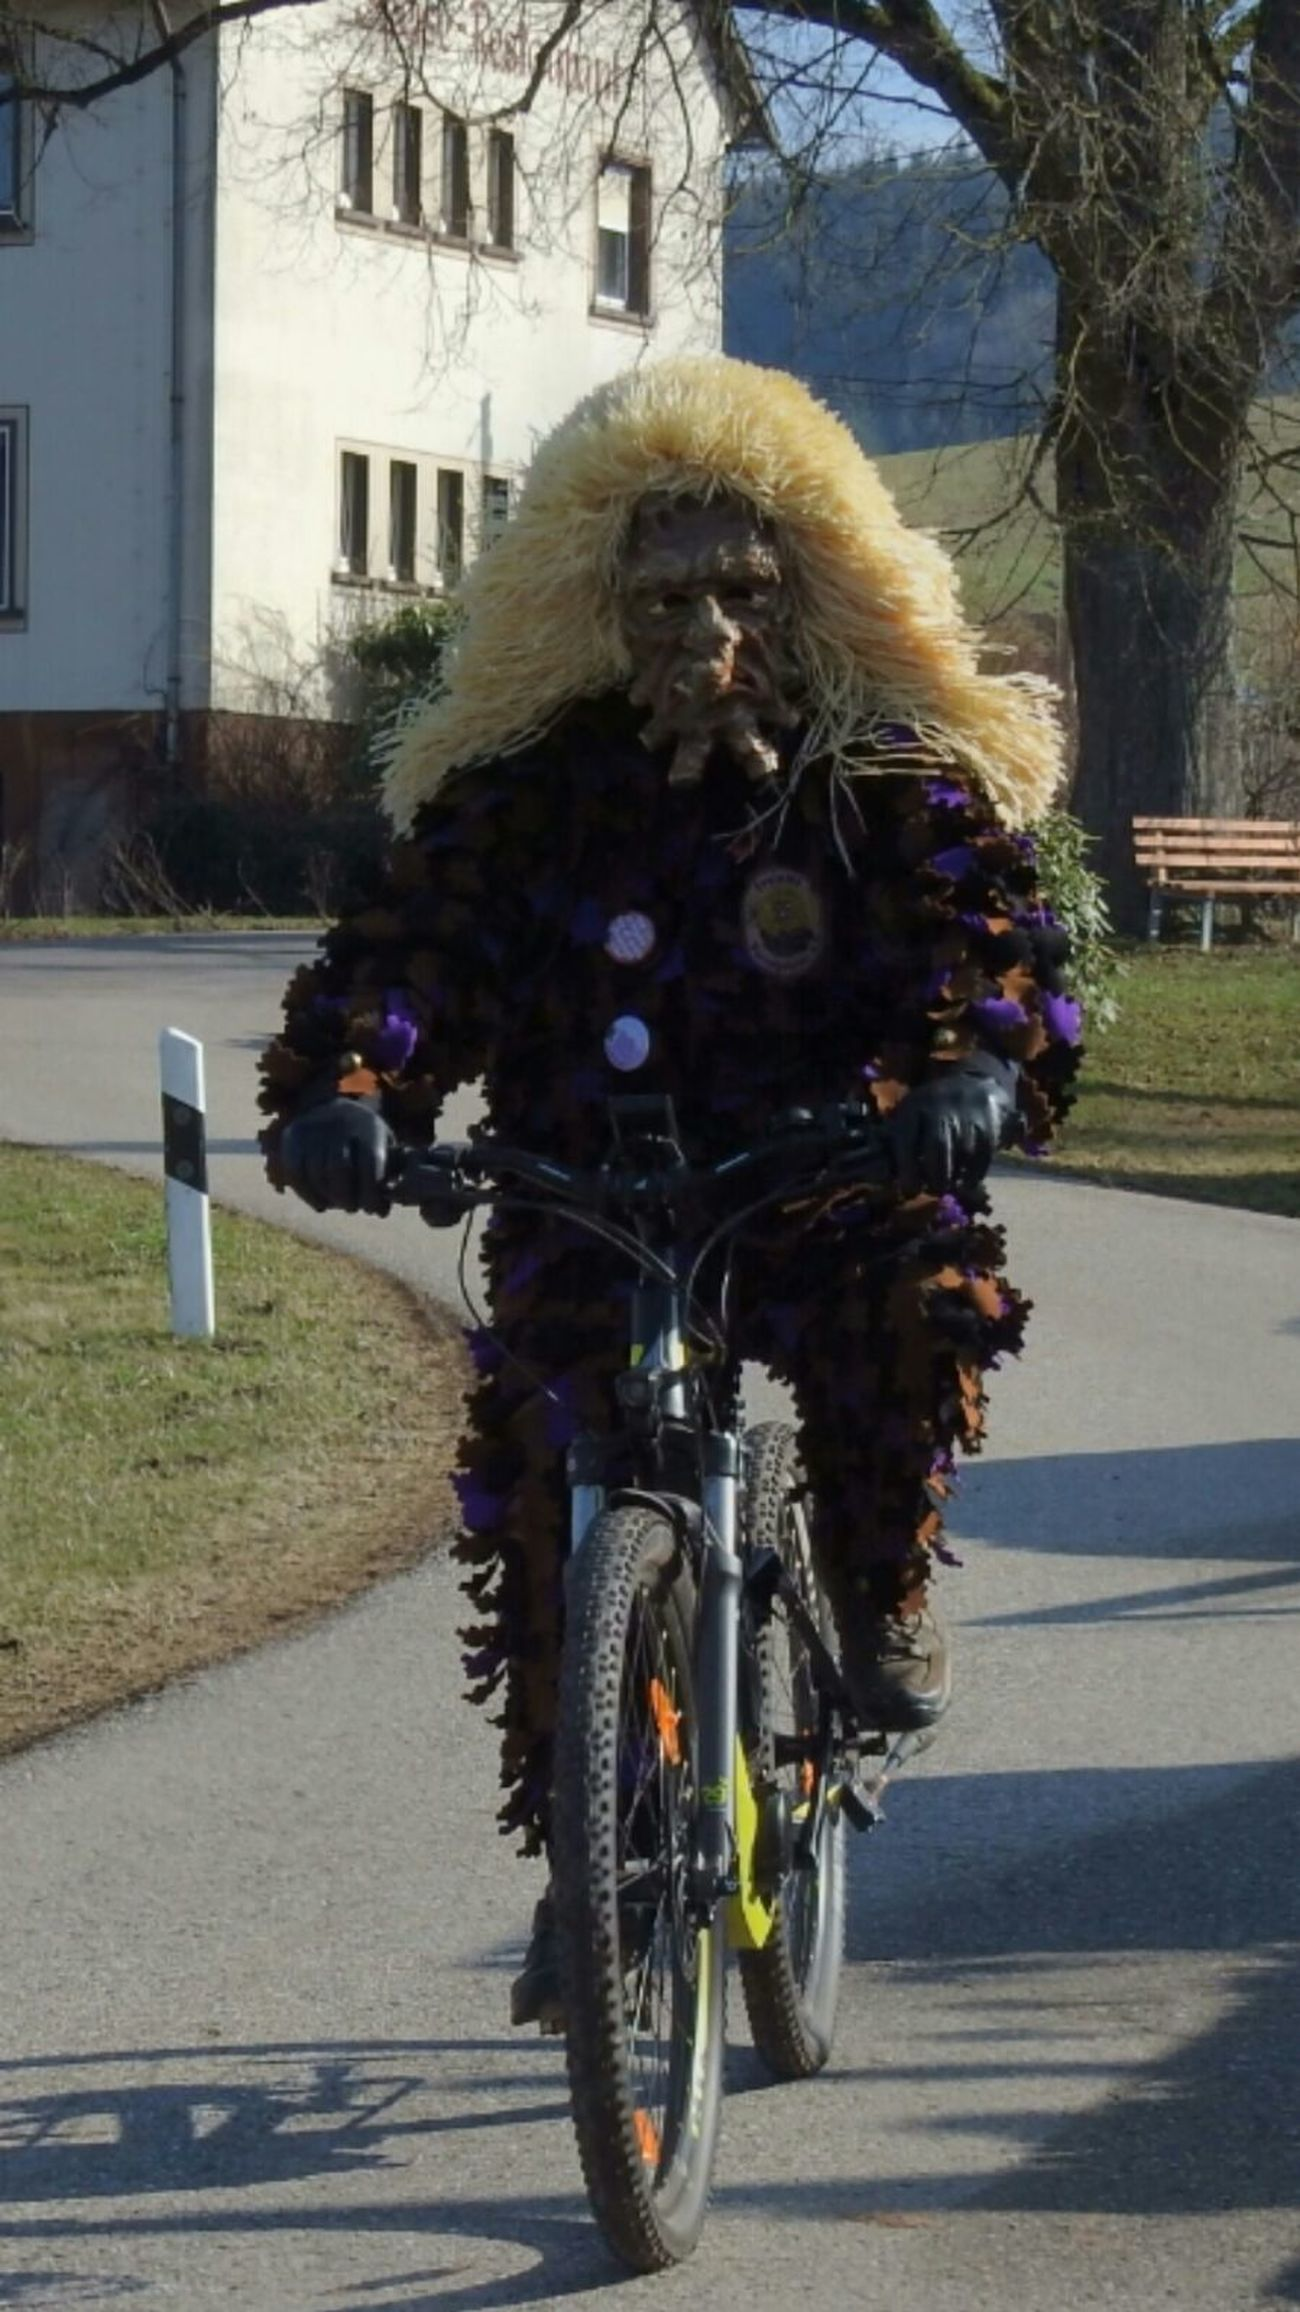 Wurzelgeister Outdoors One Person People Mode Of Transport Transportation Cycling Bicycle Day Carneval